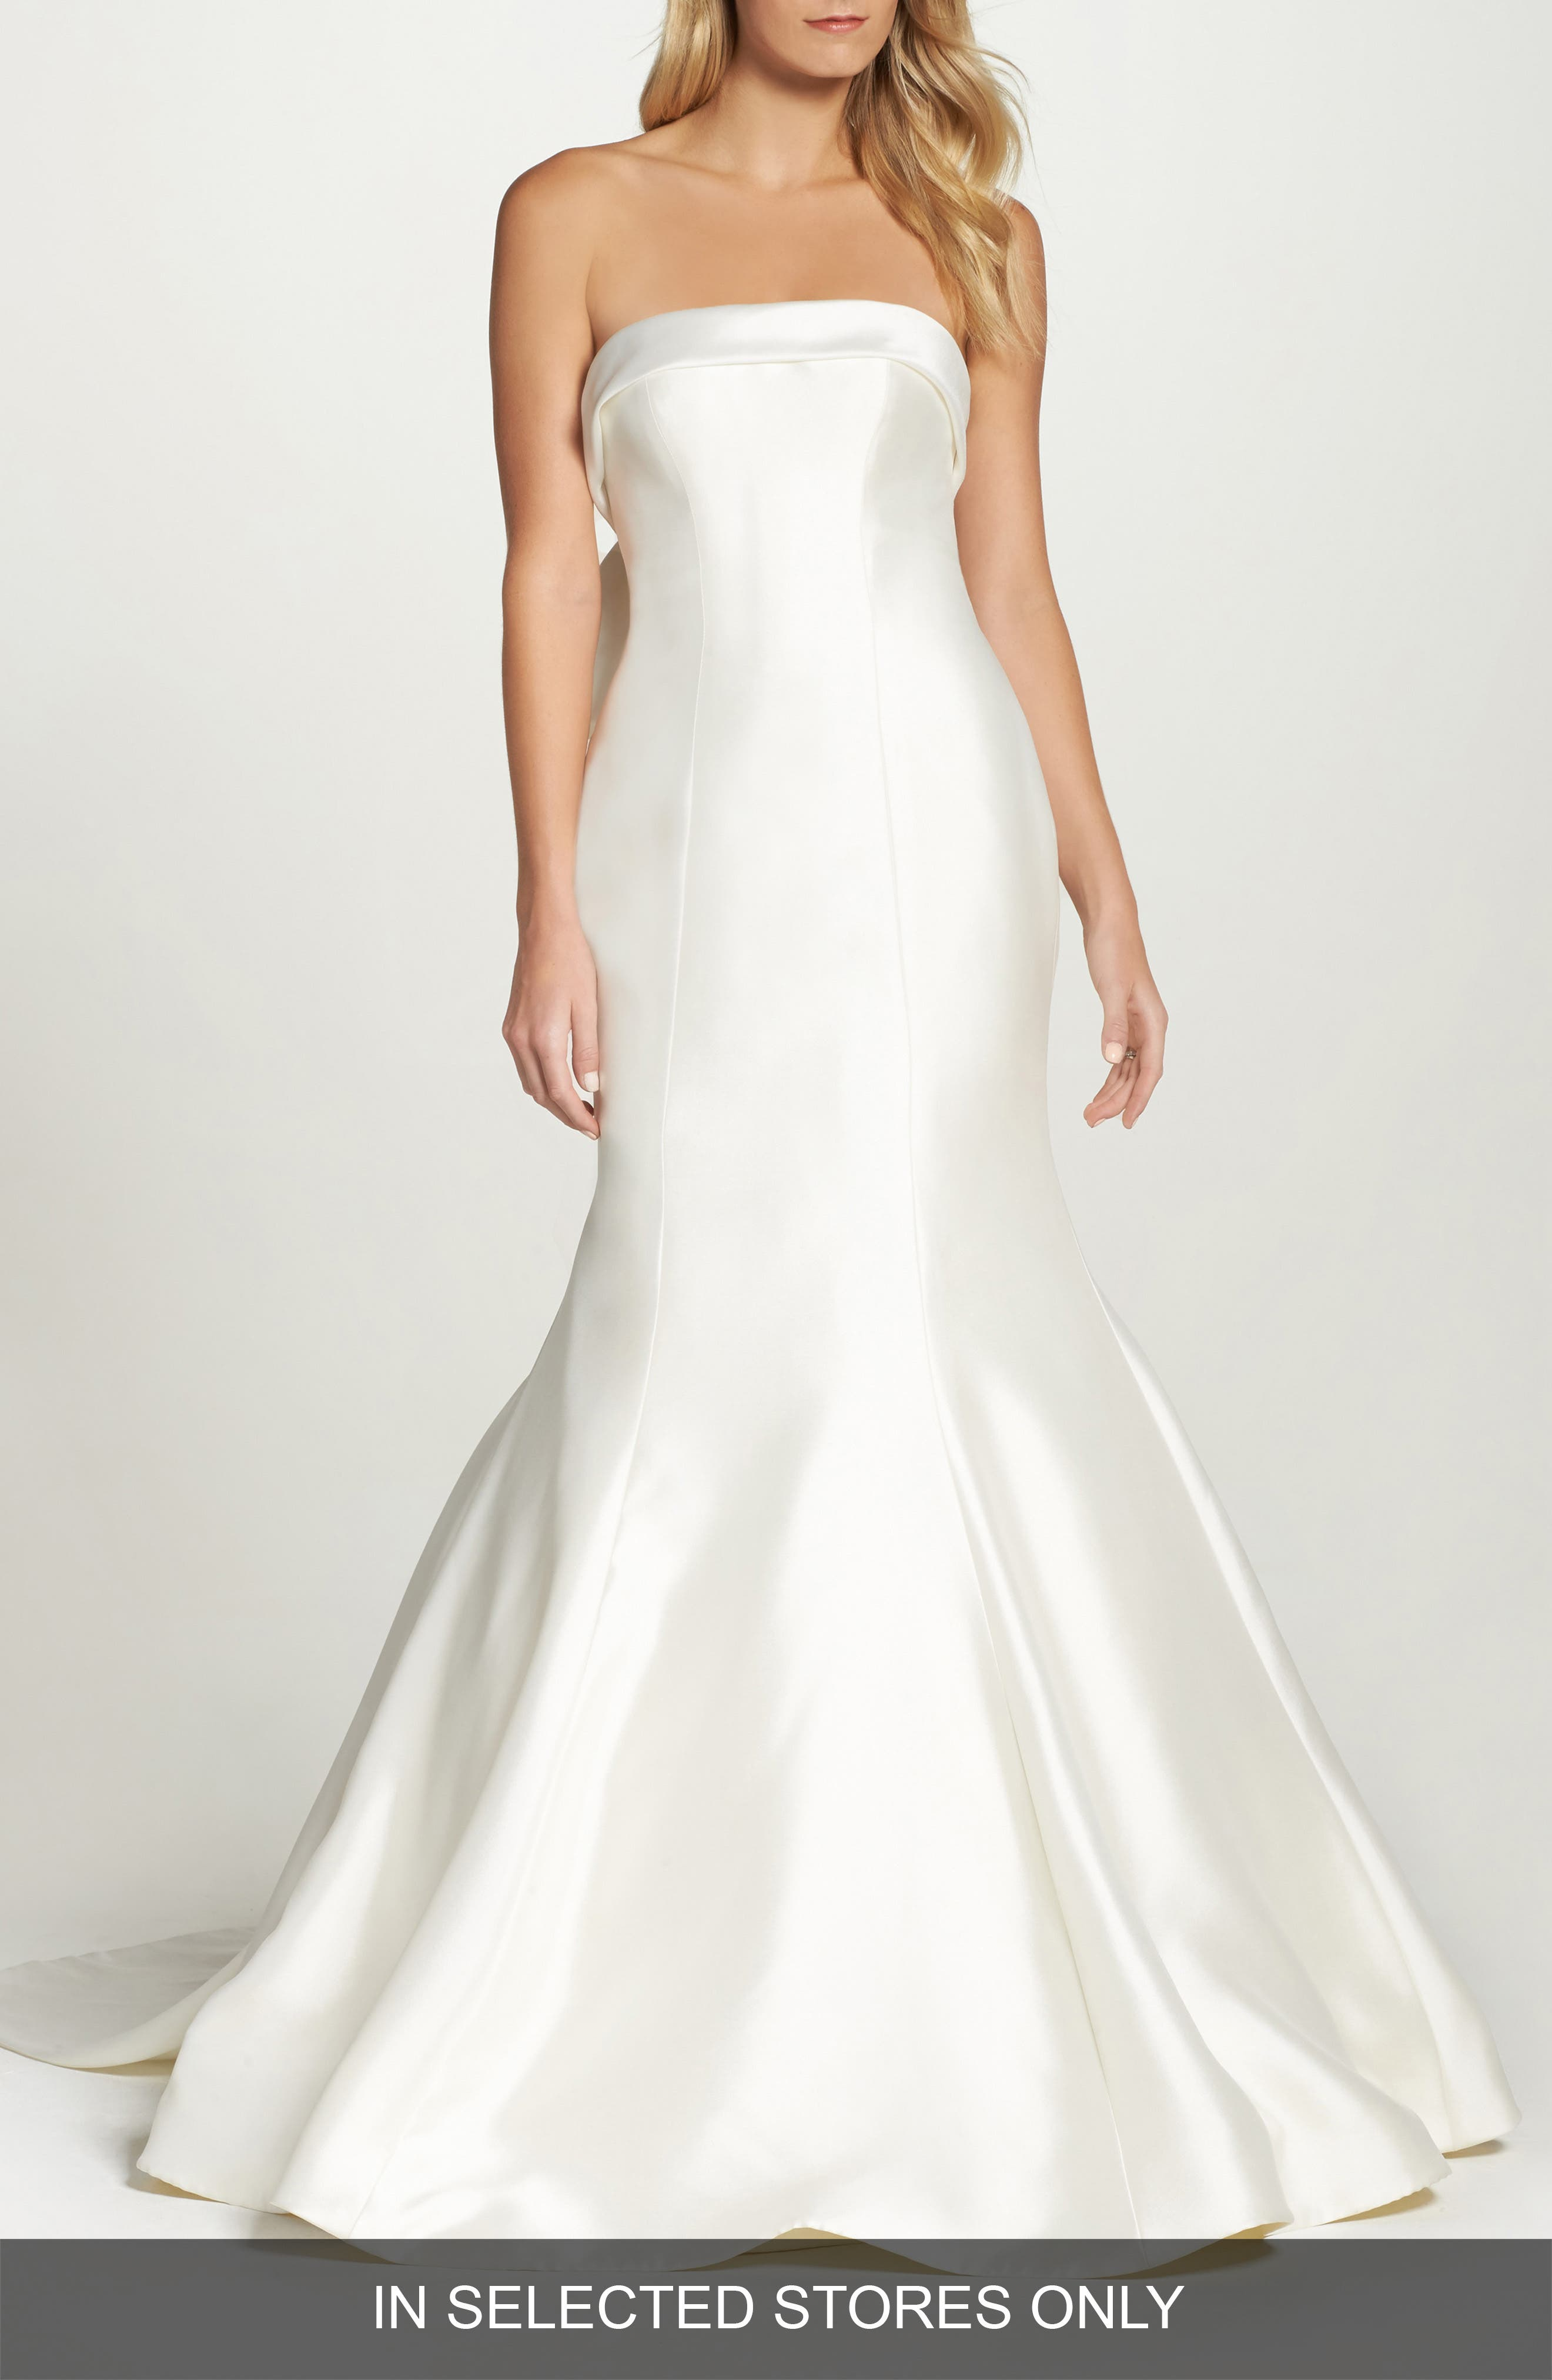 Peony Strapless Mikado Trumpet Gown with Bow Train,                         Main,                         color, Ivory